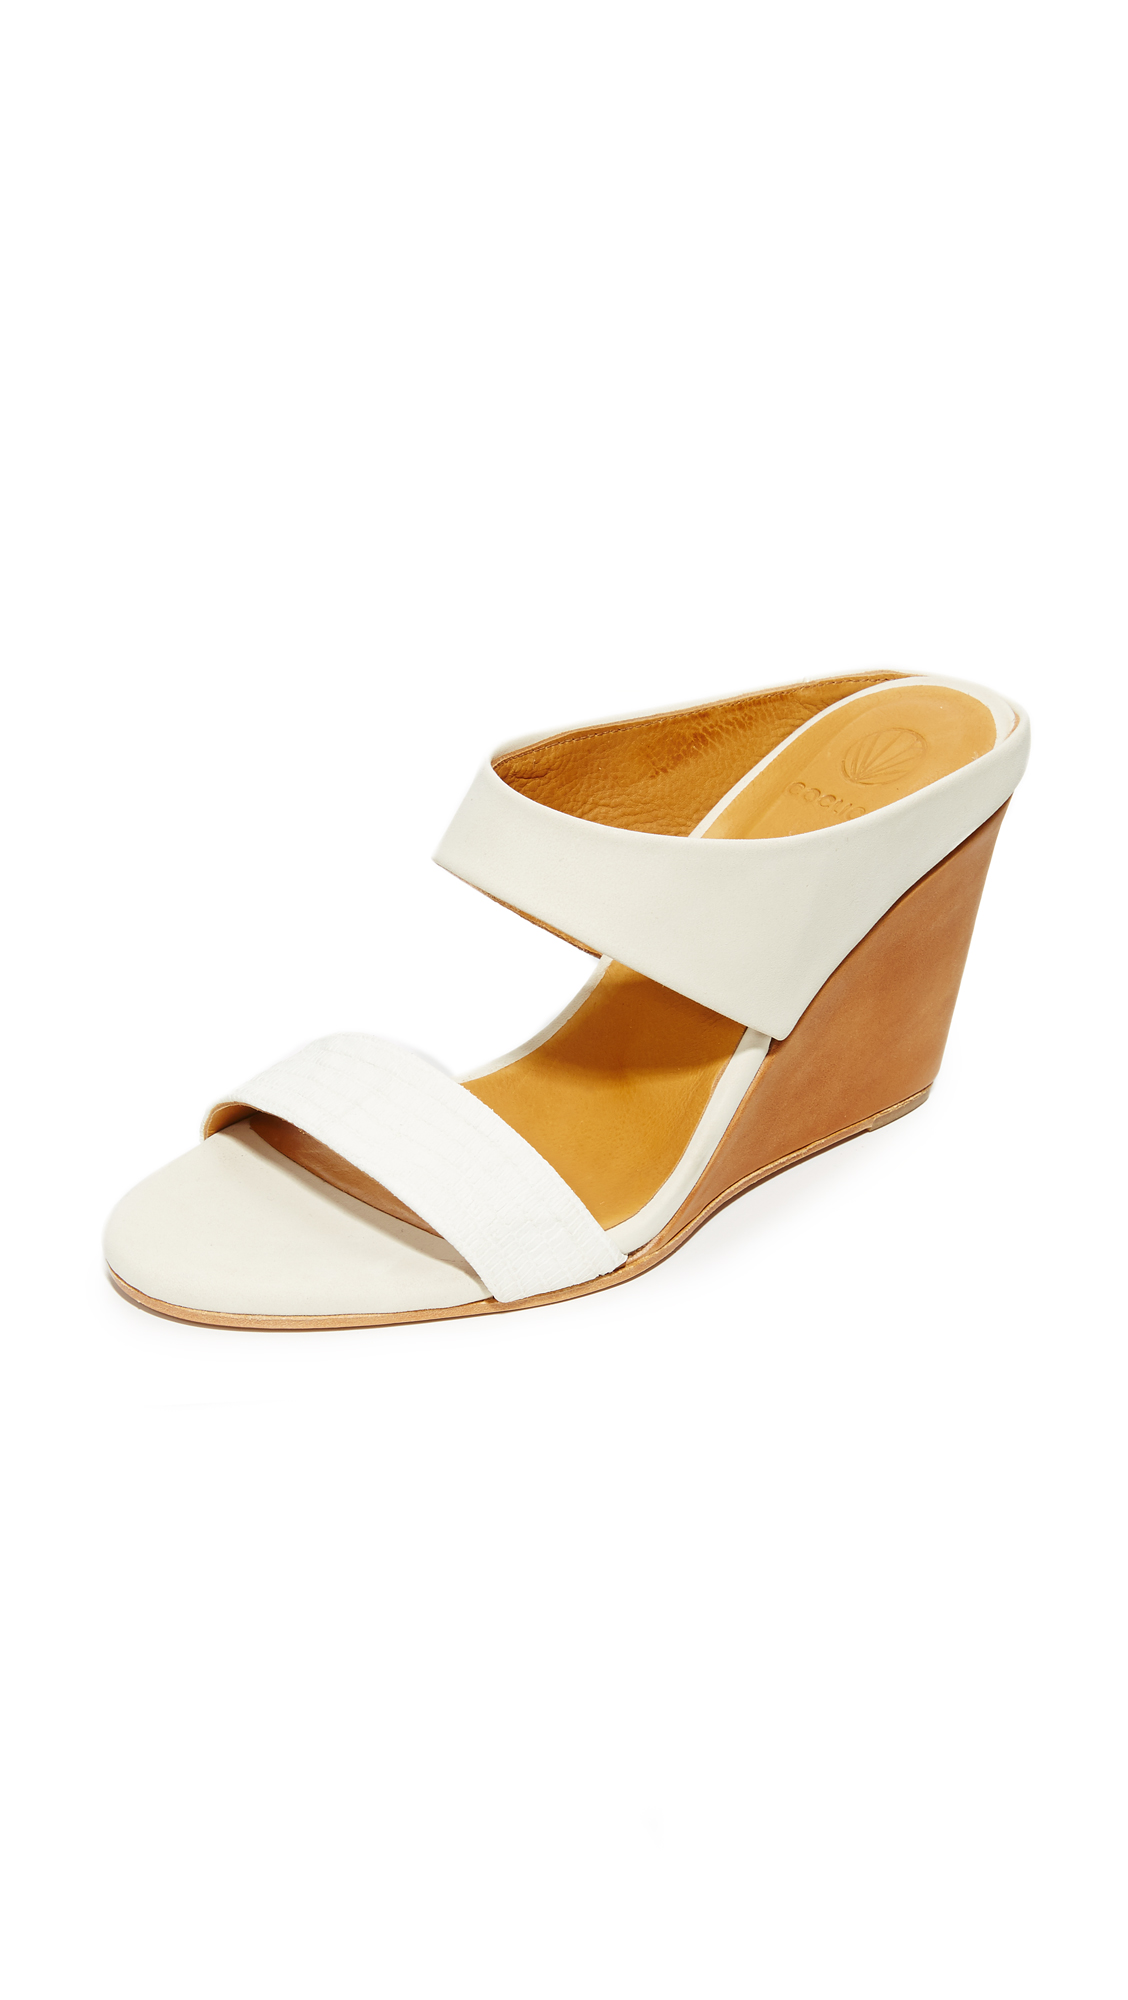 Coclico Shoes Julian Wedges - Off White/Igloo at Shopbop